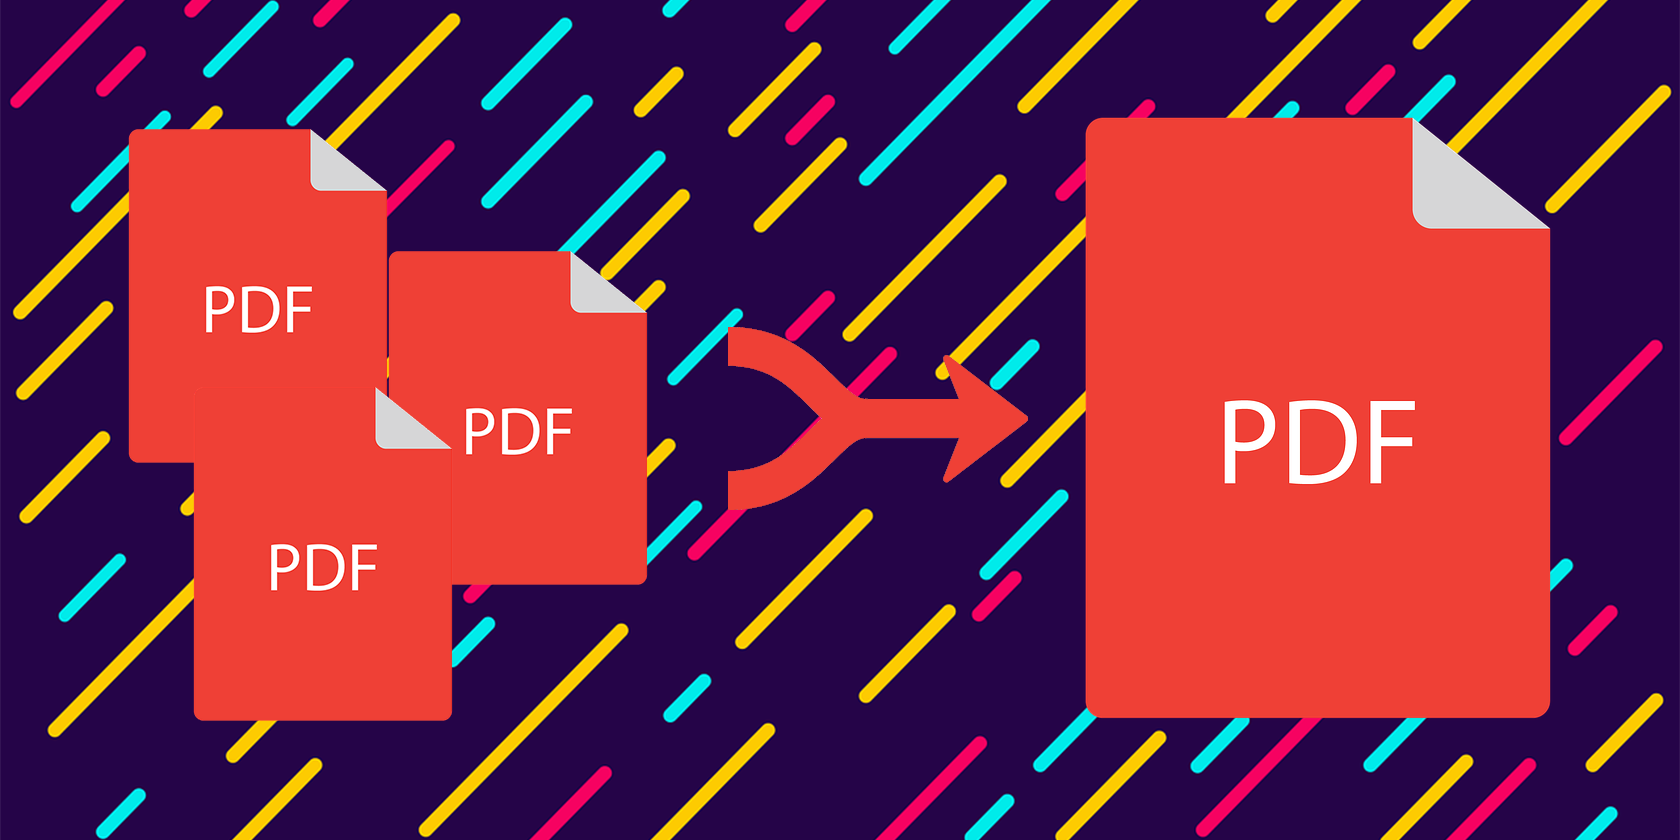 How to Merge PDFs on iPhone and iPad